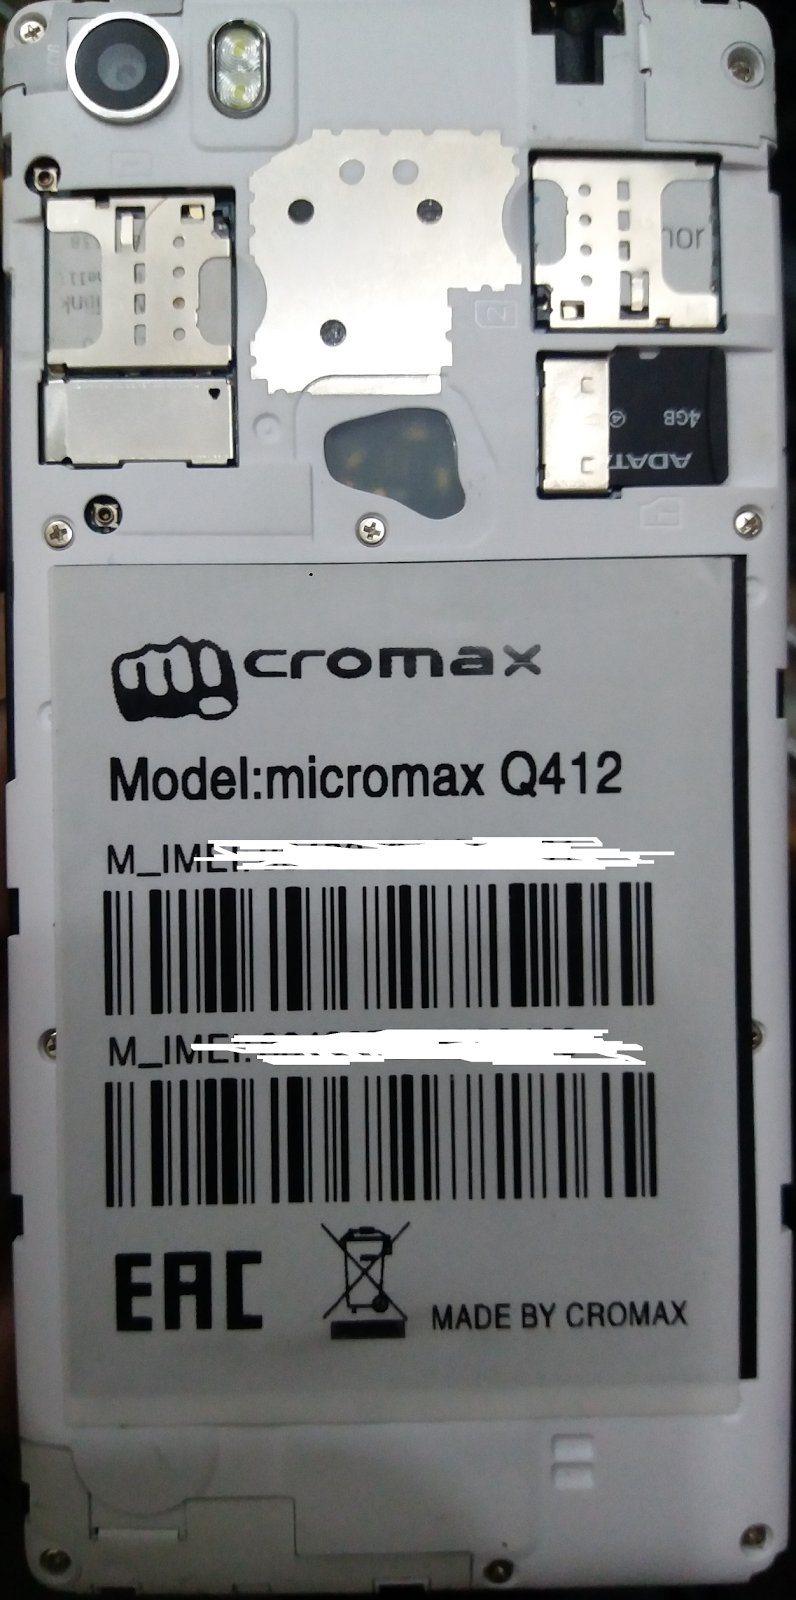 Maqsood Mobile Software: Micromax Q412 MT6735 Flash File